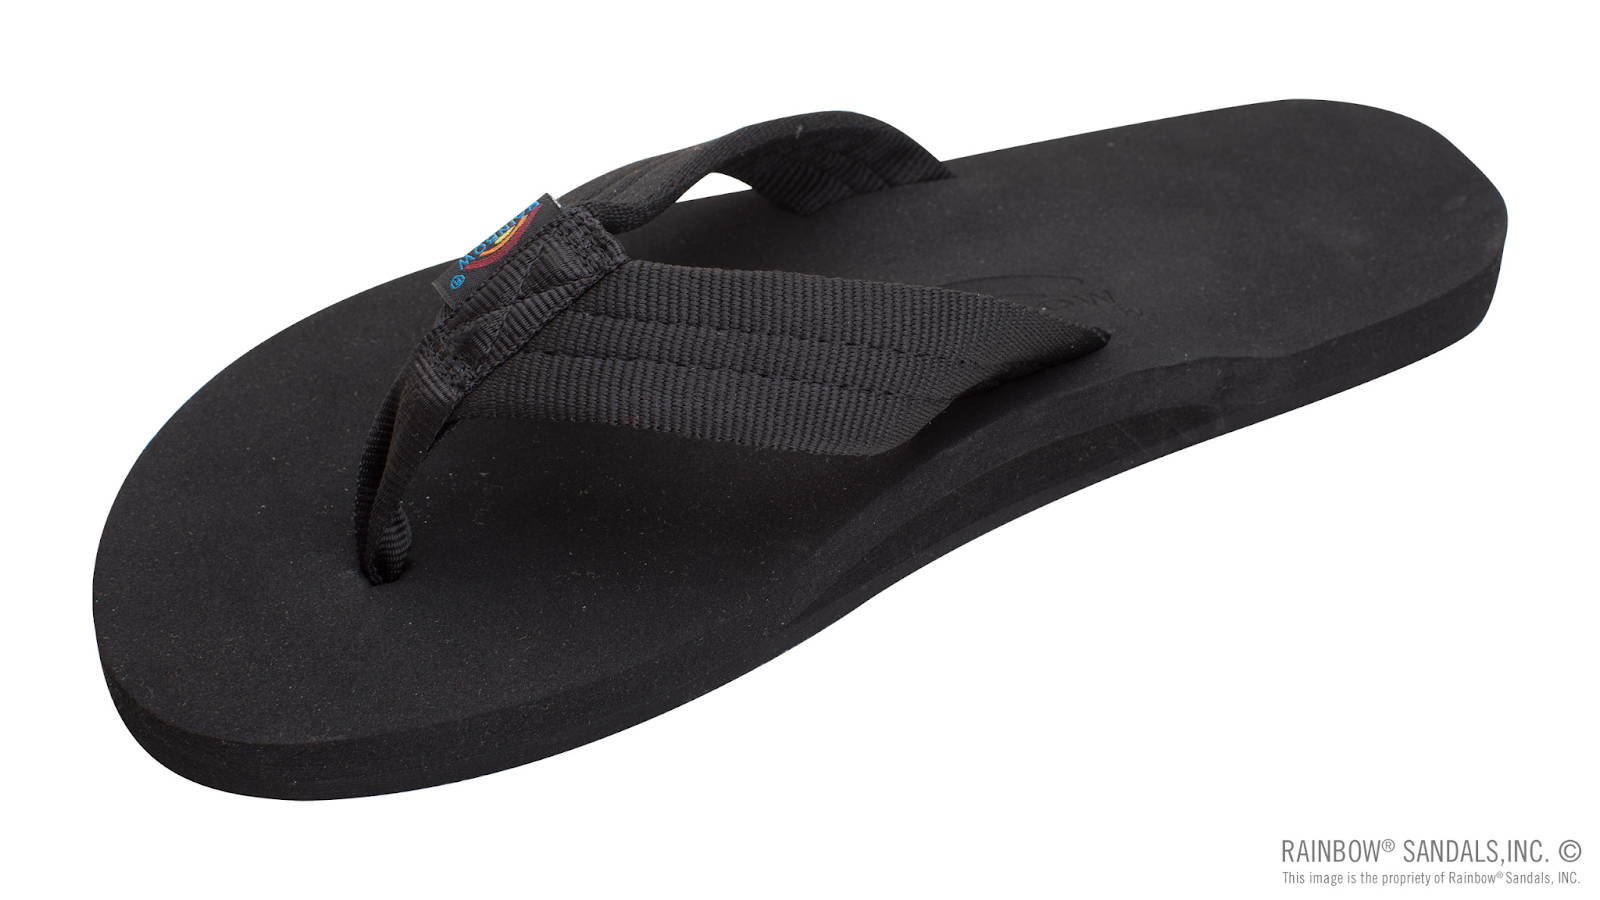 Rainbow Sandals, The Cloud, Single Layer Soft Top With Arch Support And Polyester Strap